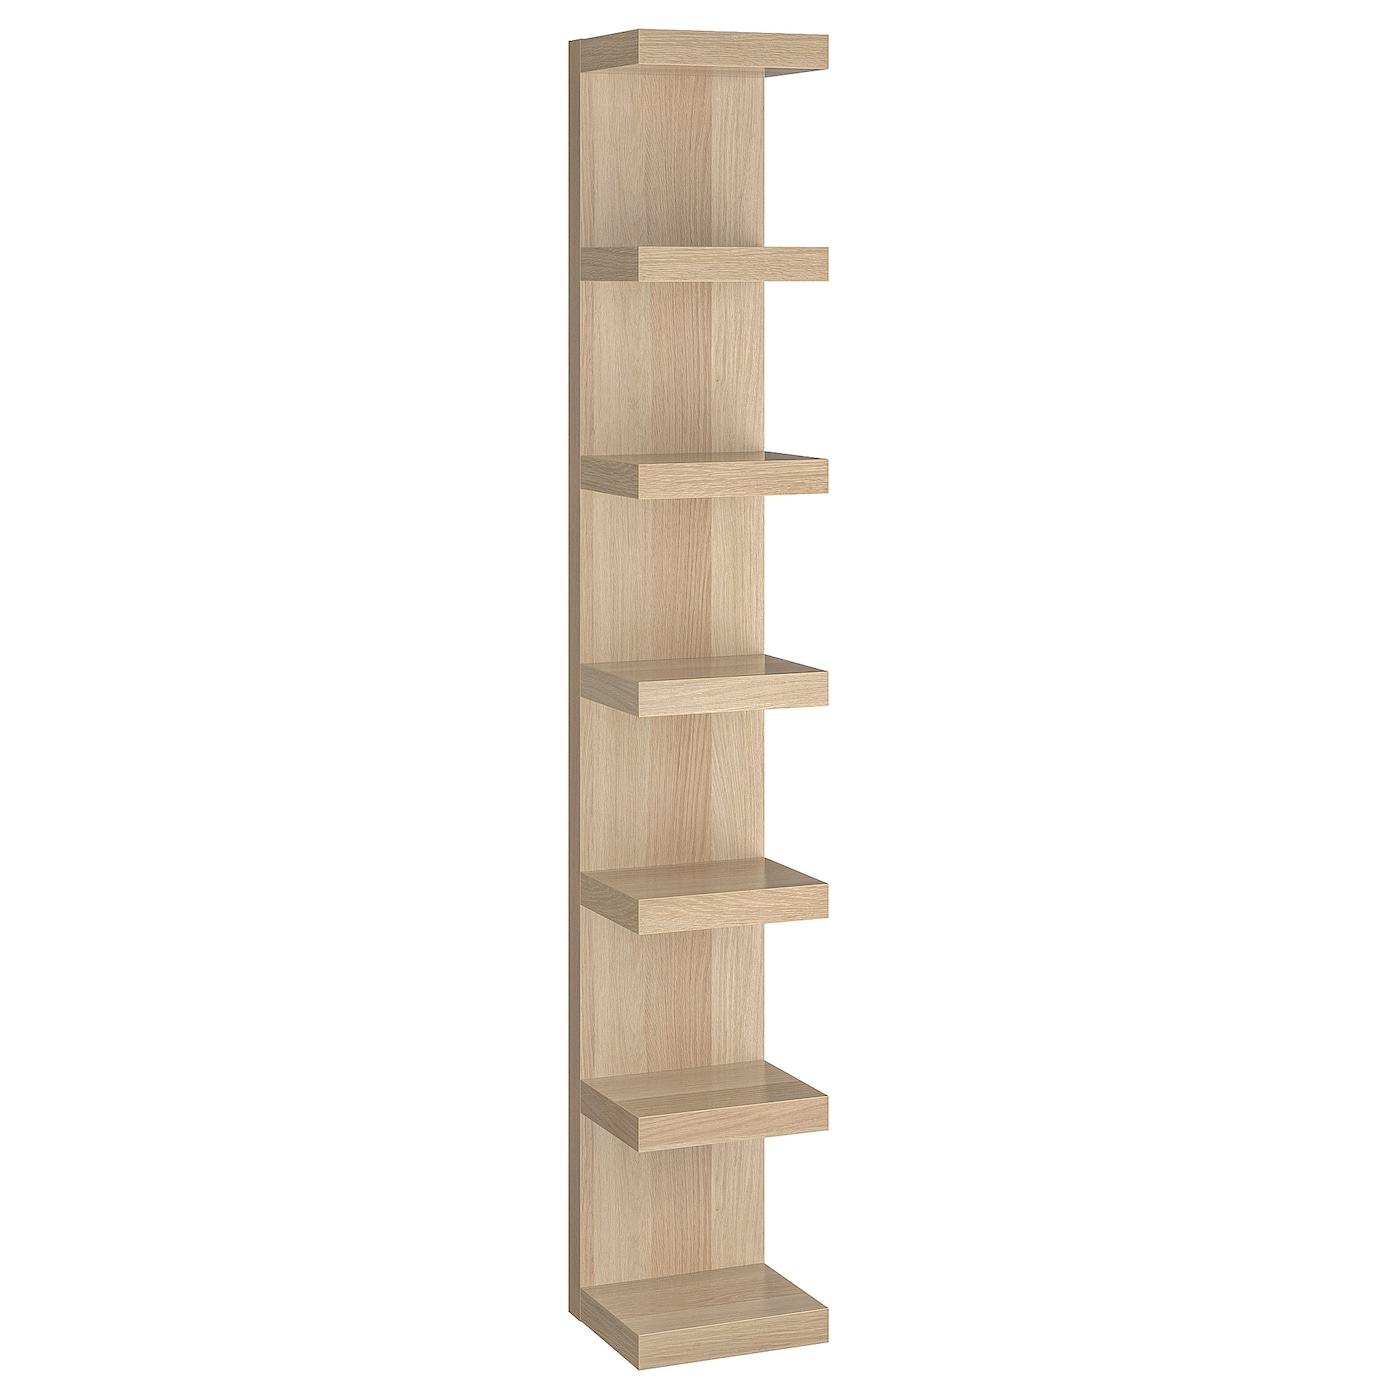 Trendy Lack Wall Shelf Unit, White With Narrow Profile Standard Cube Bookcases (View 17 of 20)